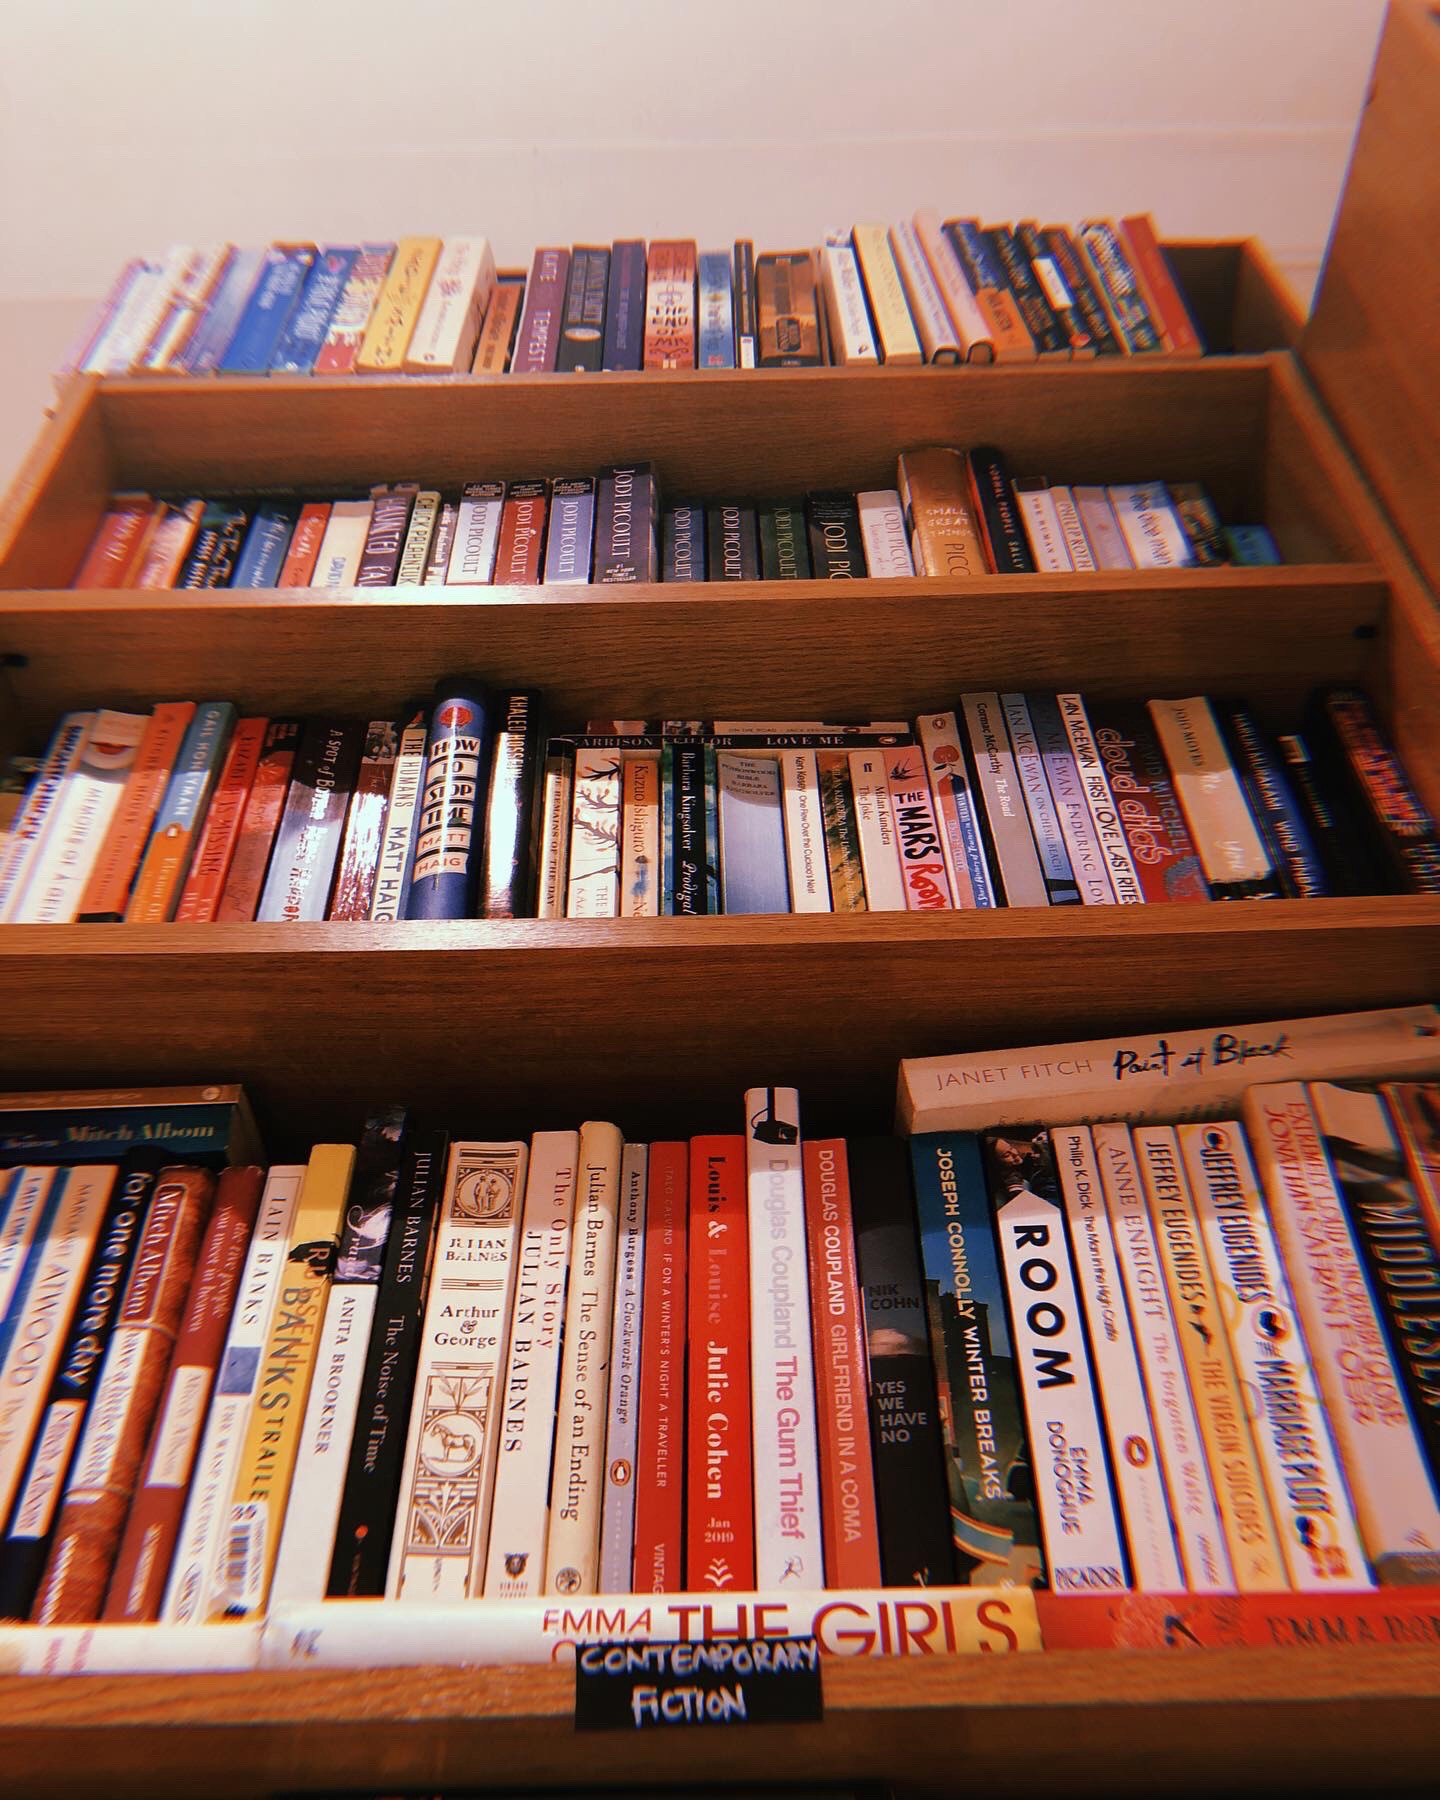 10 Ways To Organise Your Books Organisational Methods For Optimising By Kayla Martell Feldman The Startup Medium,Checked Baggage United Cost